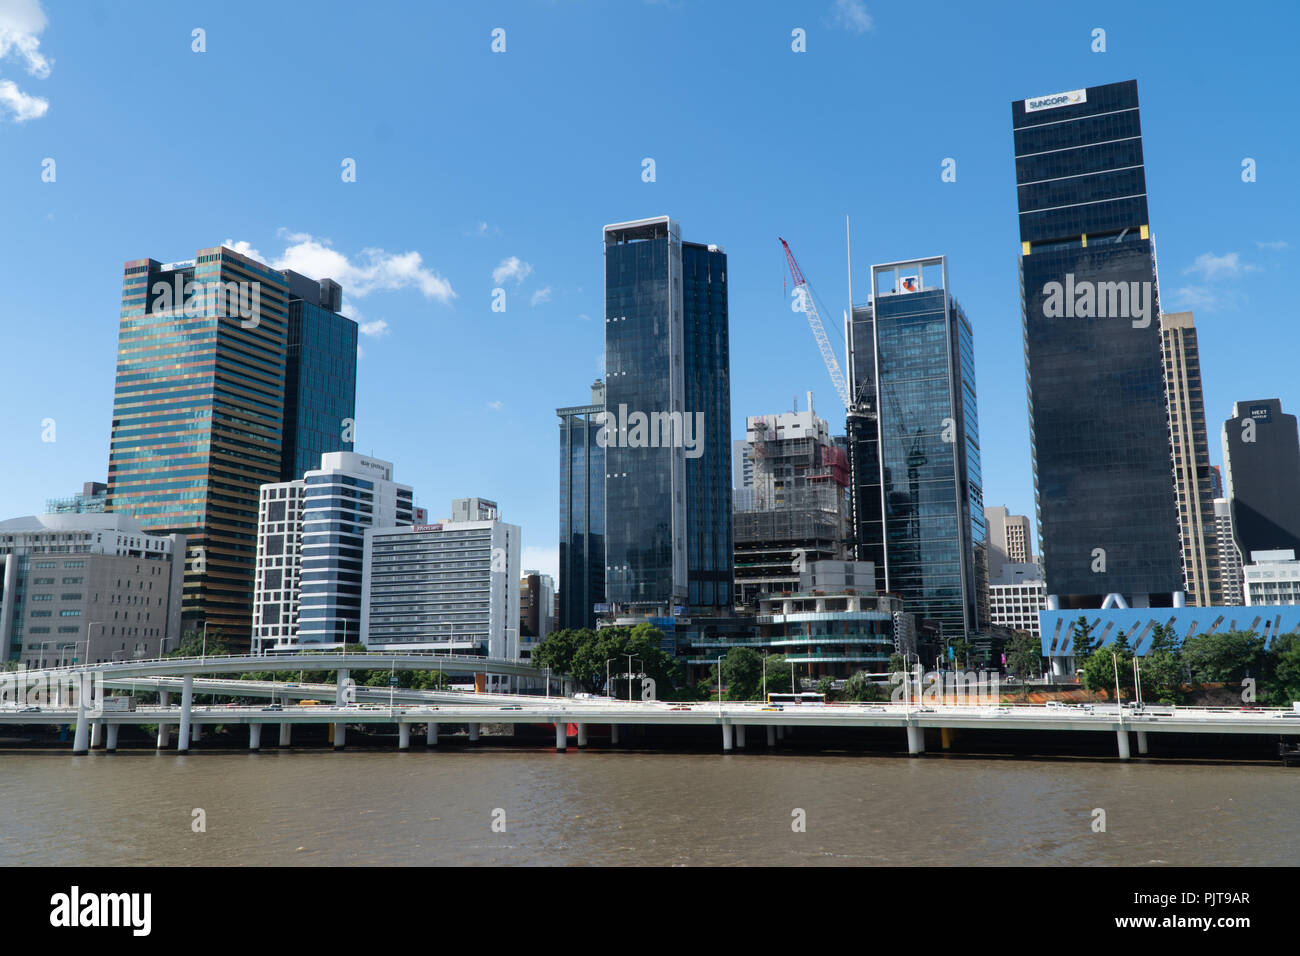 Skyline of Brisbane City from the opposite side of the river - Stock Image